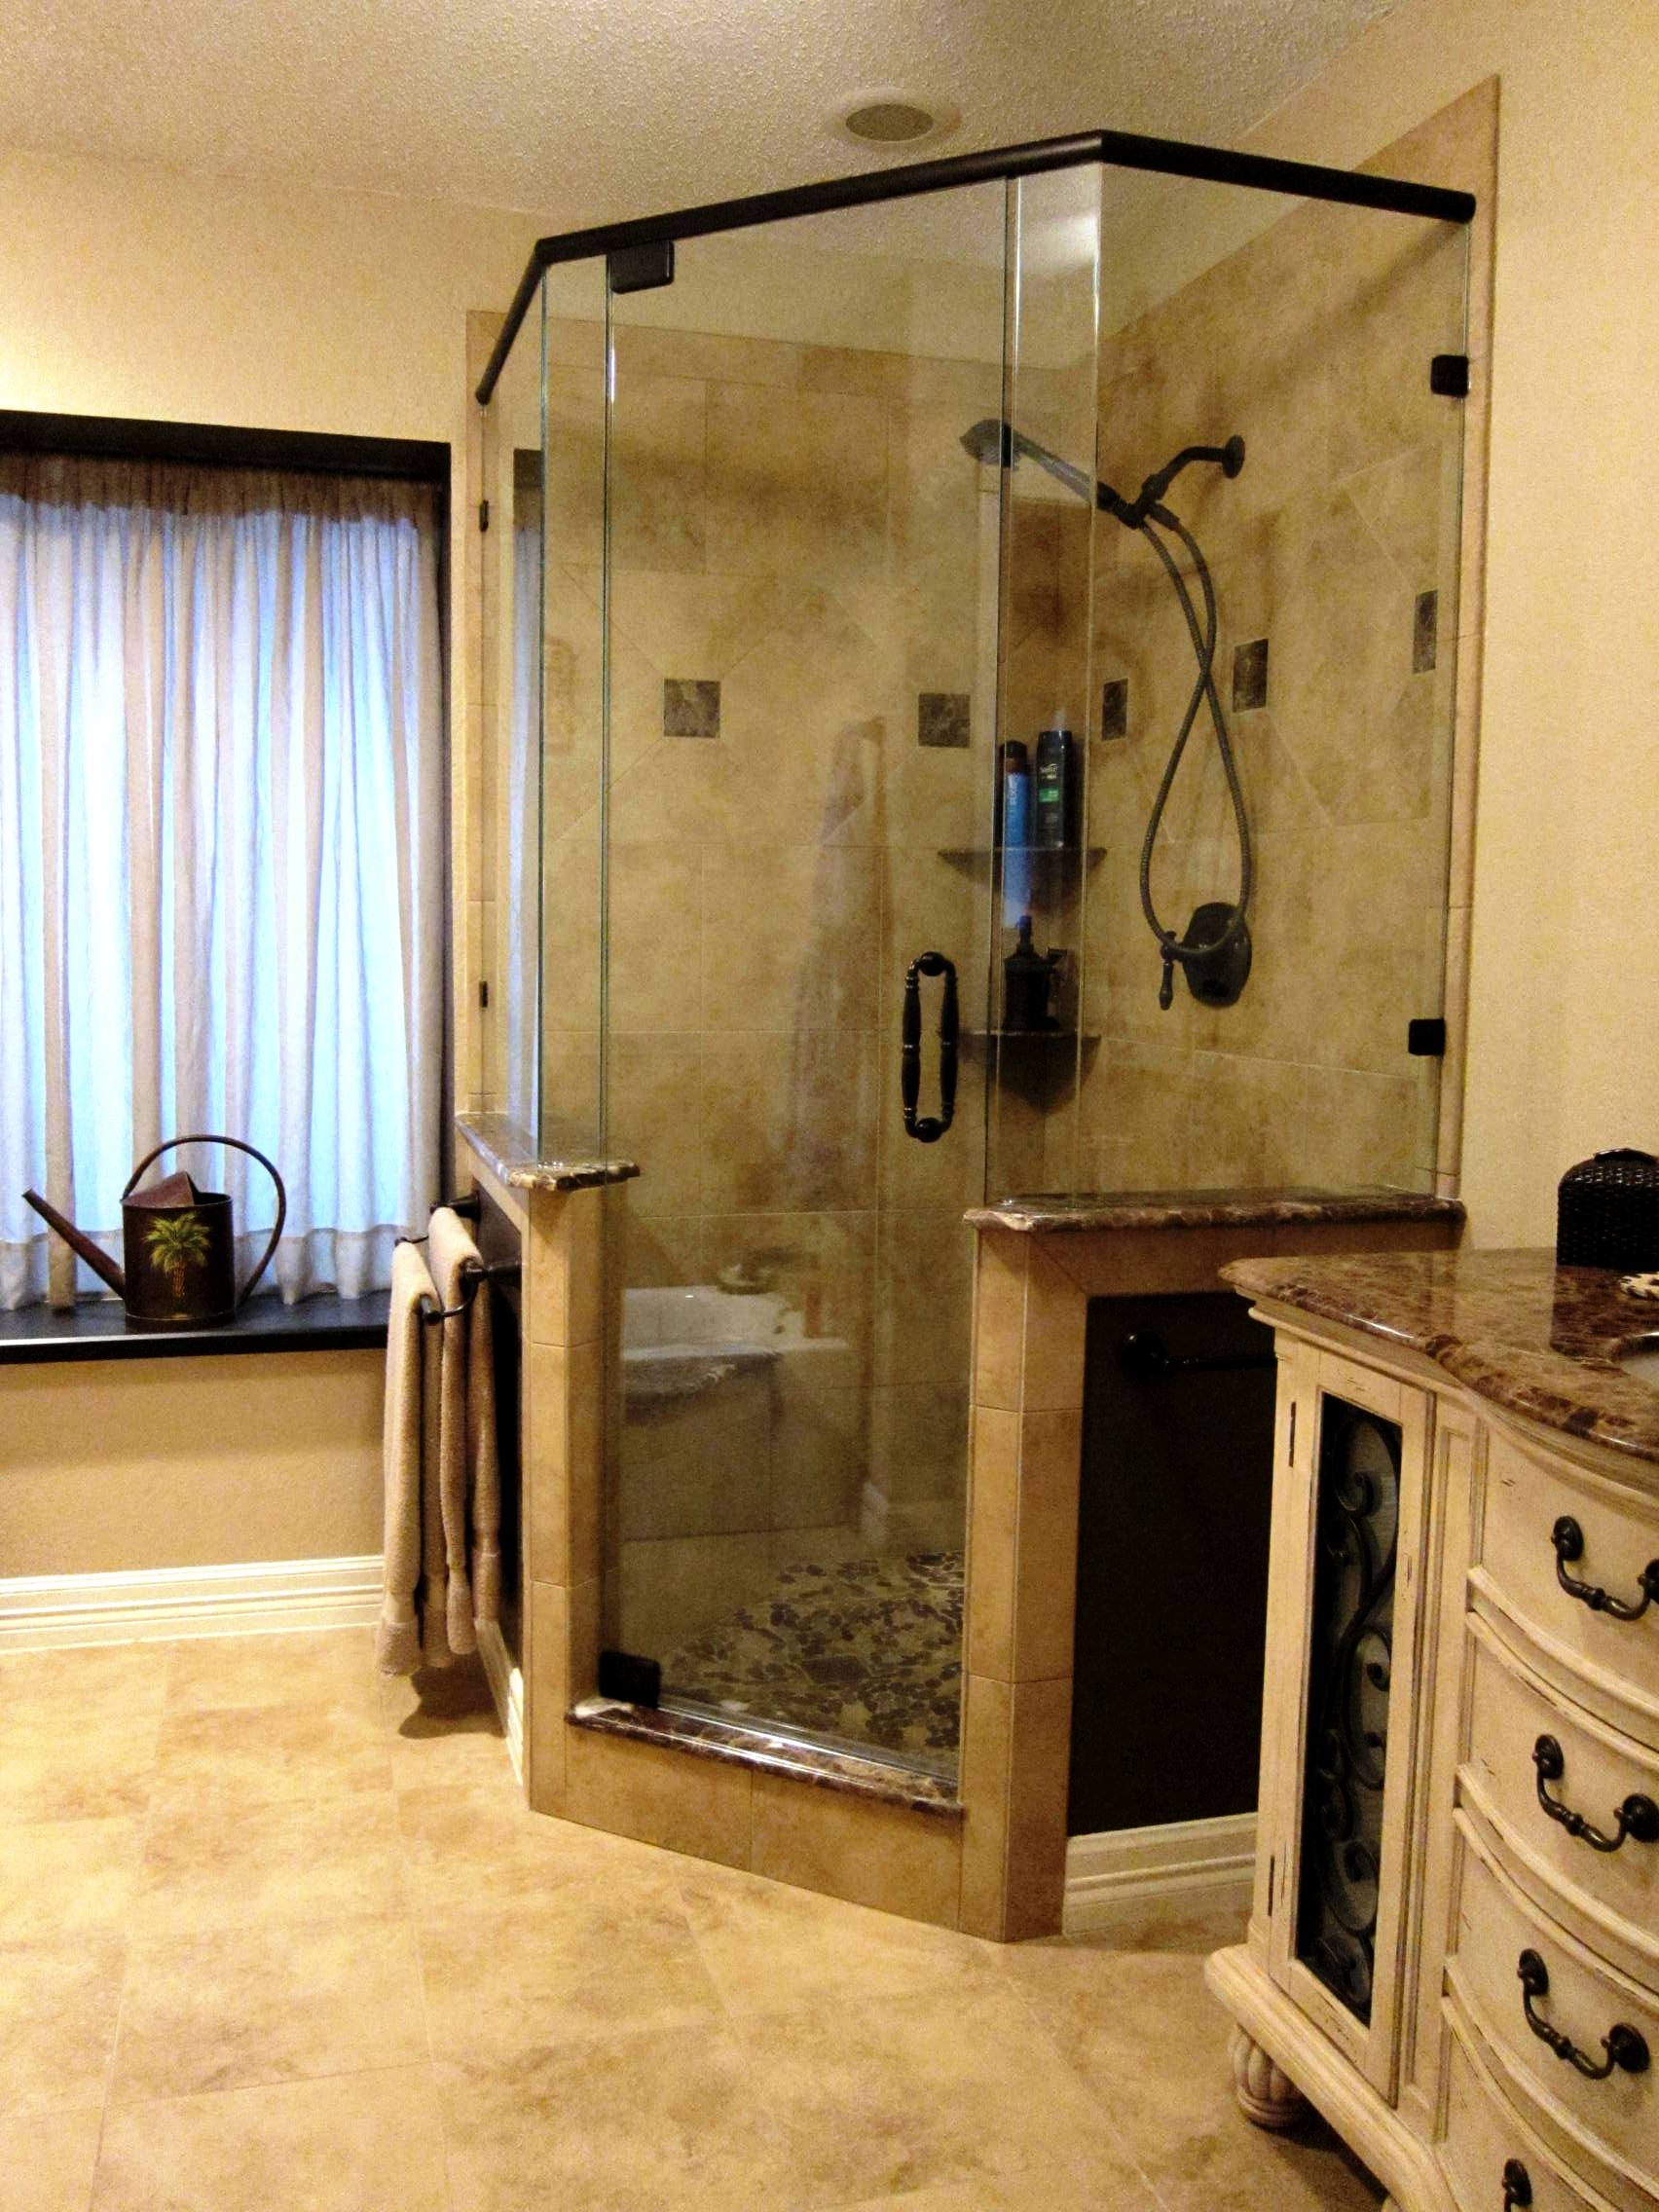 Remodeling Bathroom Average Cost cost to remodel small bathroom - large and beautiful photos. photo